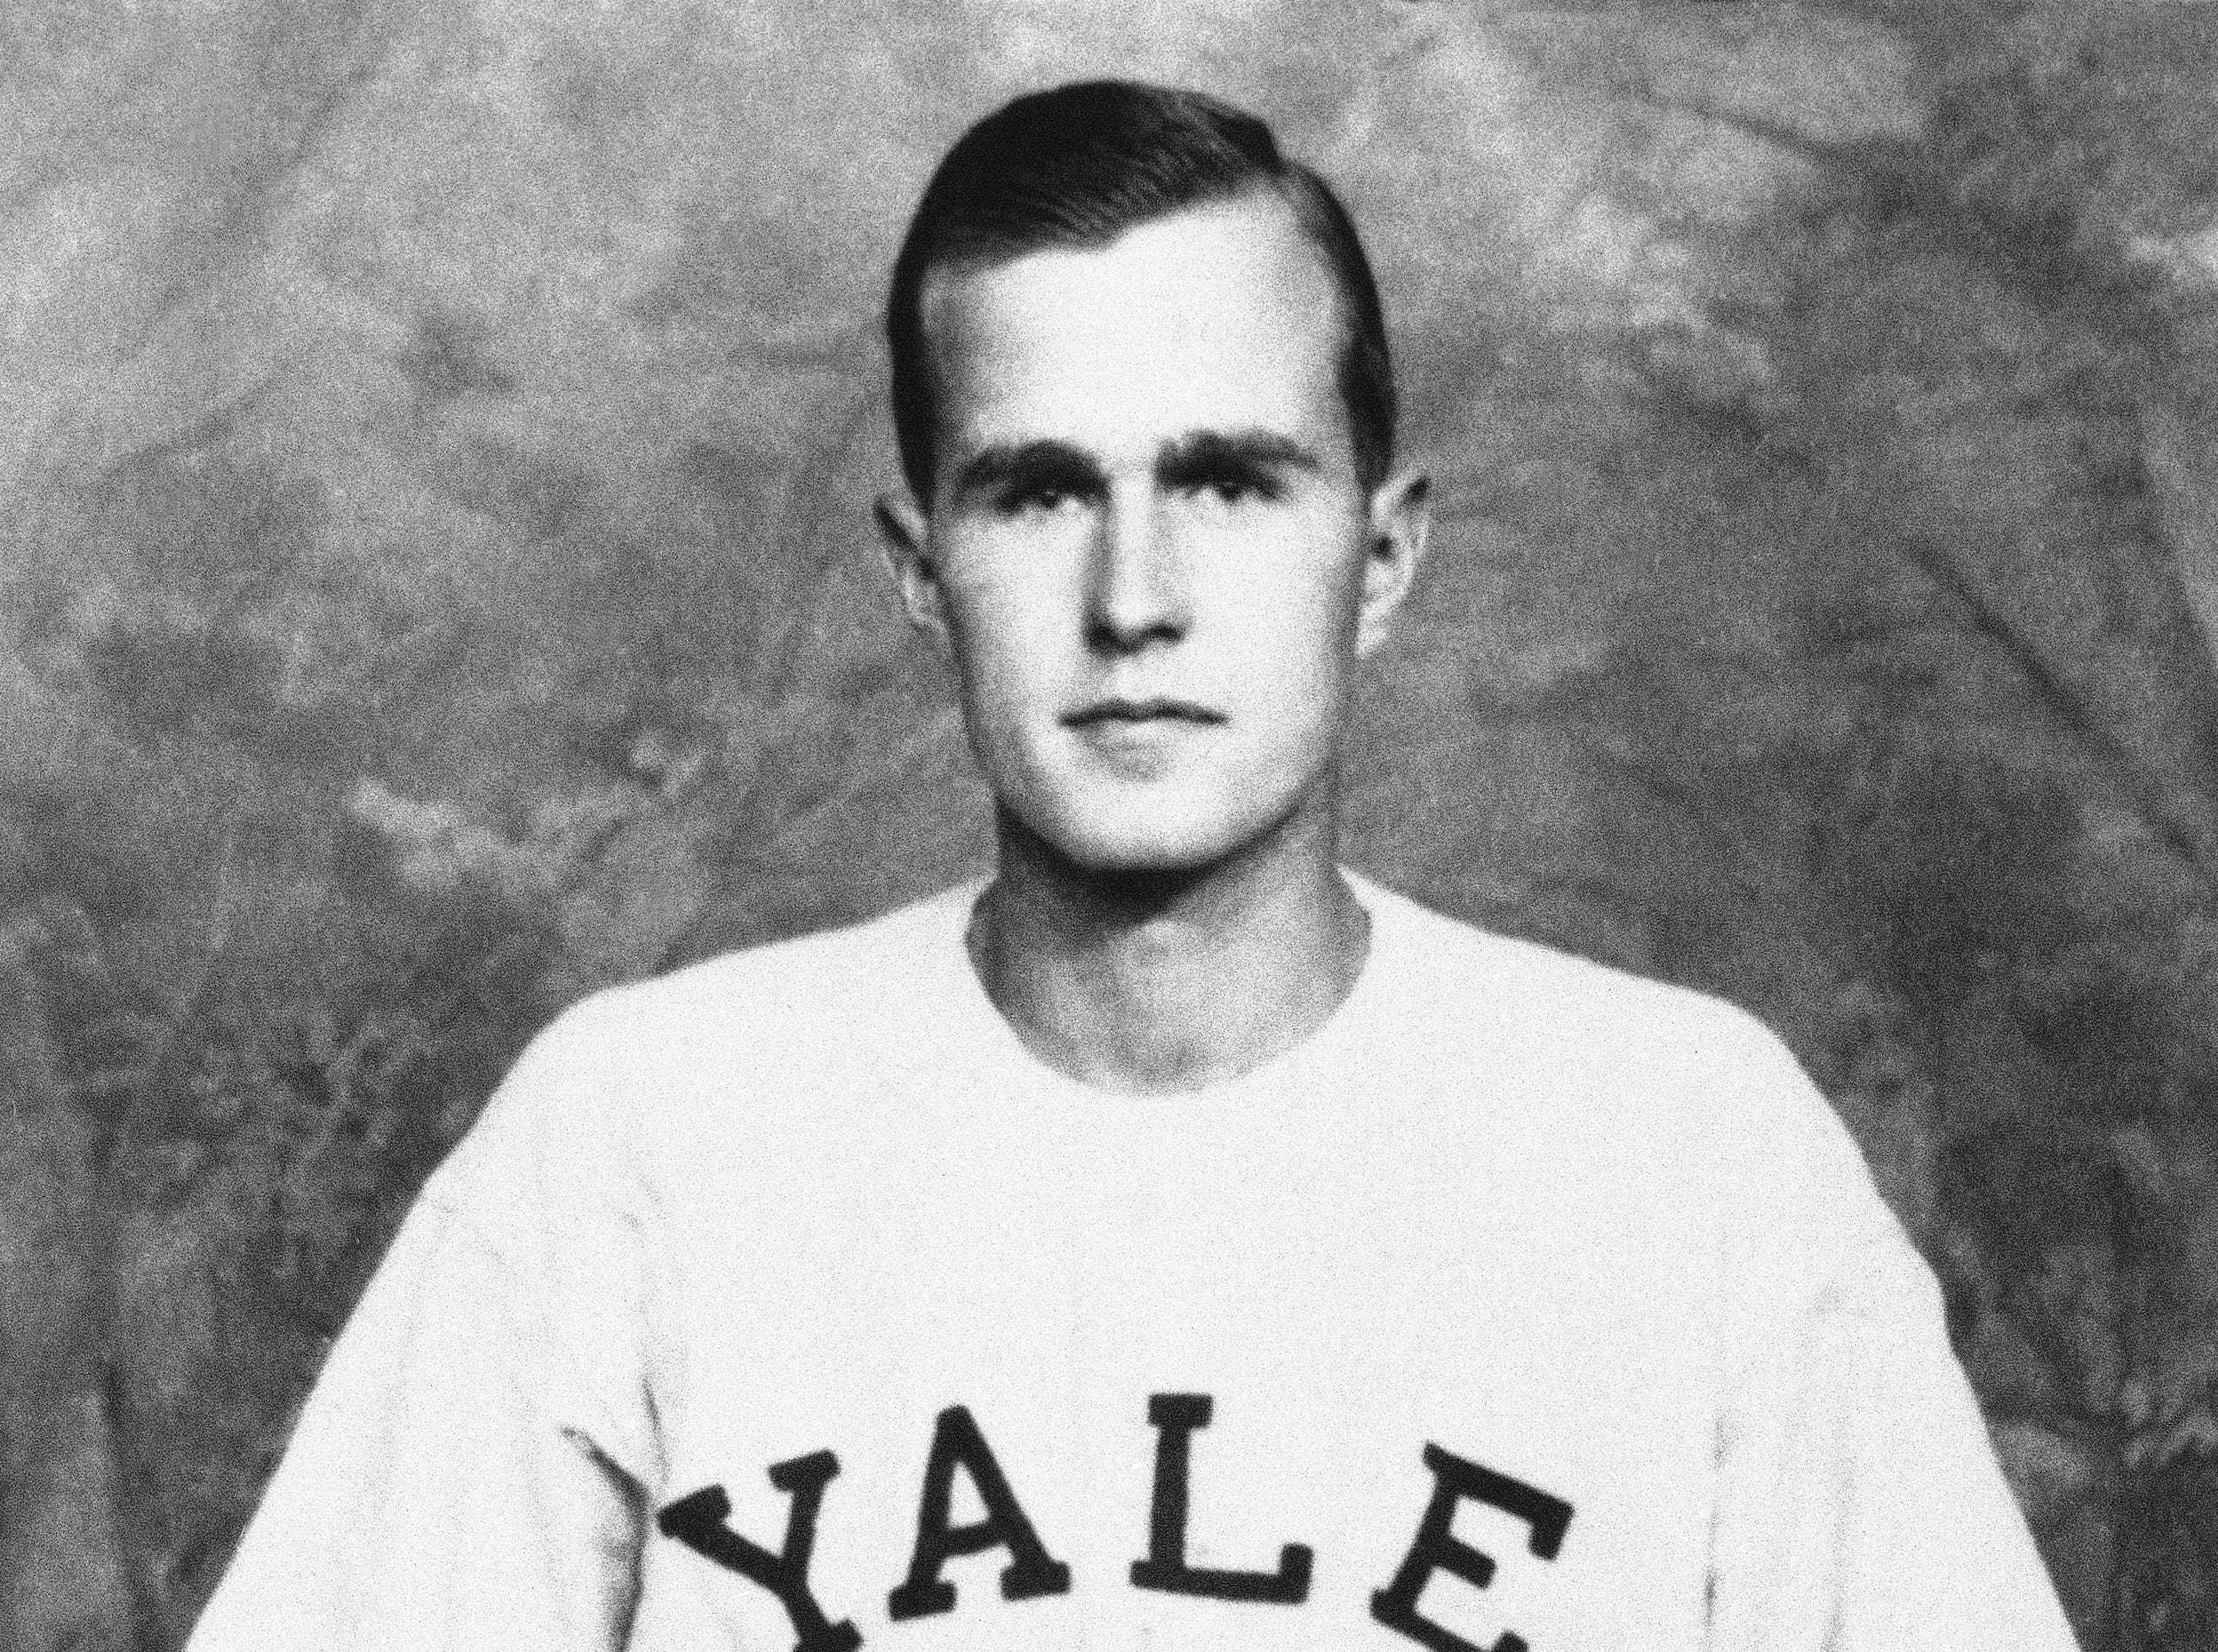 FILE - In this 1947 photo, George H.W. Bush is shown as captain of the Yale baseball team, in New Haven, Conn. Bush played in the first-ever College World Series in 1947. (Bush died Nov. 30, 2018, at the age of 94. Bush was largely known for his work in public office, from his time as a Texas congressman and CIA director to his years in the White House as president and Ronald Reagan's vice president. But the World War II hero and great-grandfather also was an avid skydiver, played in the first-ever College World Series and was the longest-married president in U.S. history.AP Photo/File)